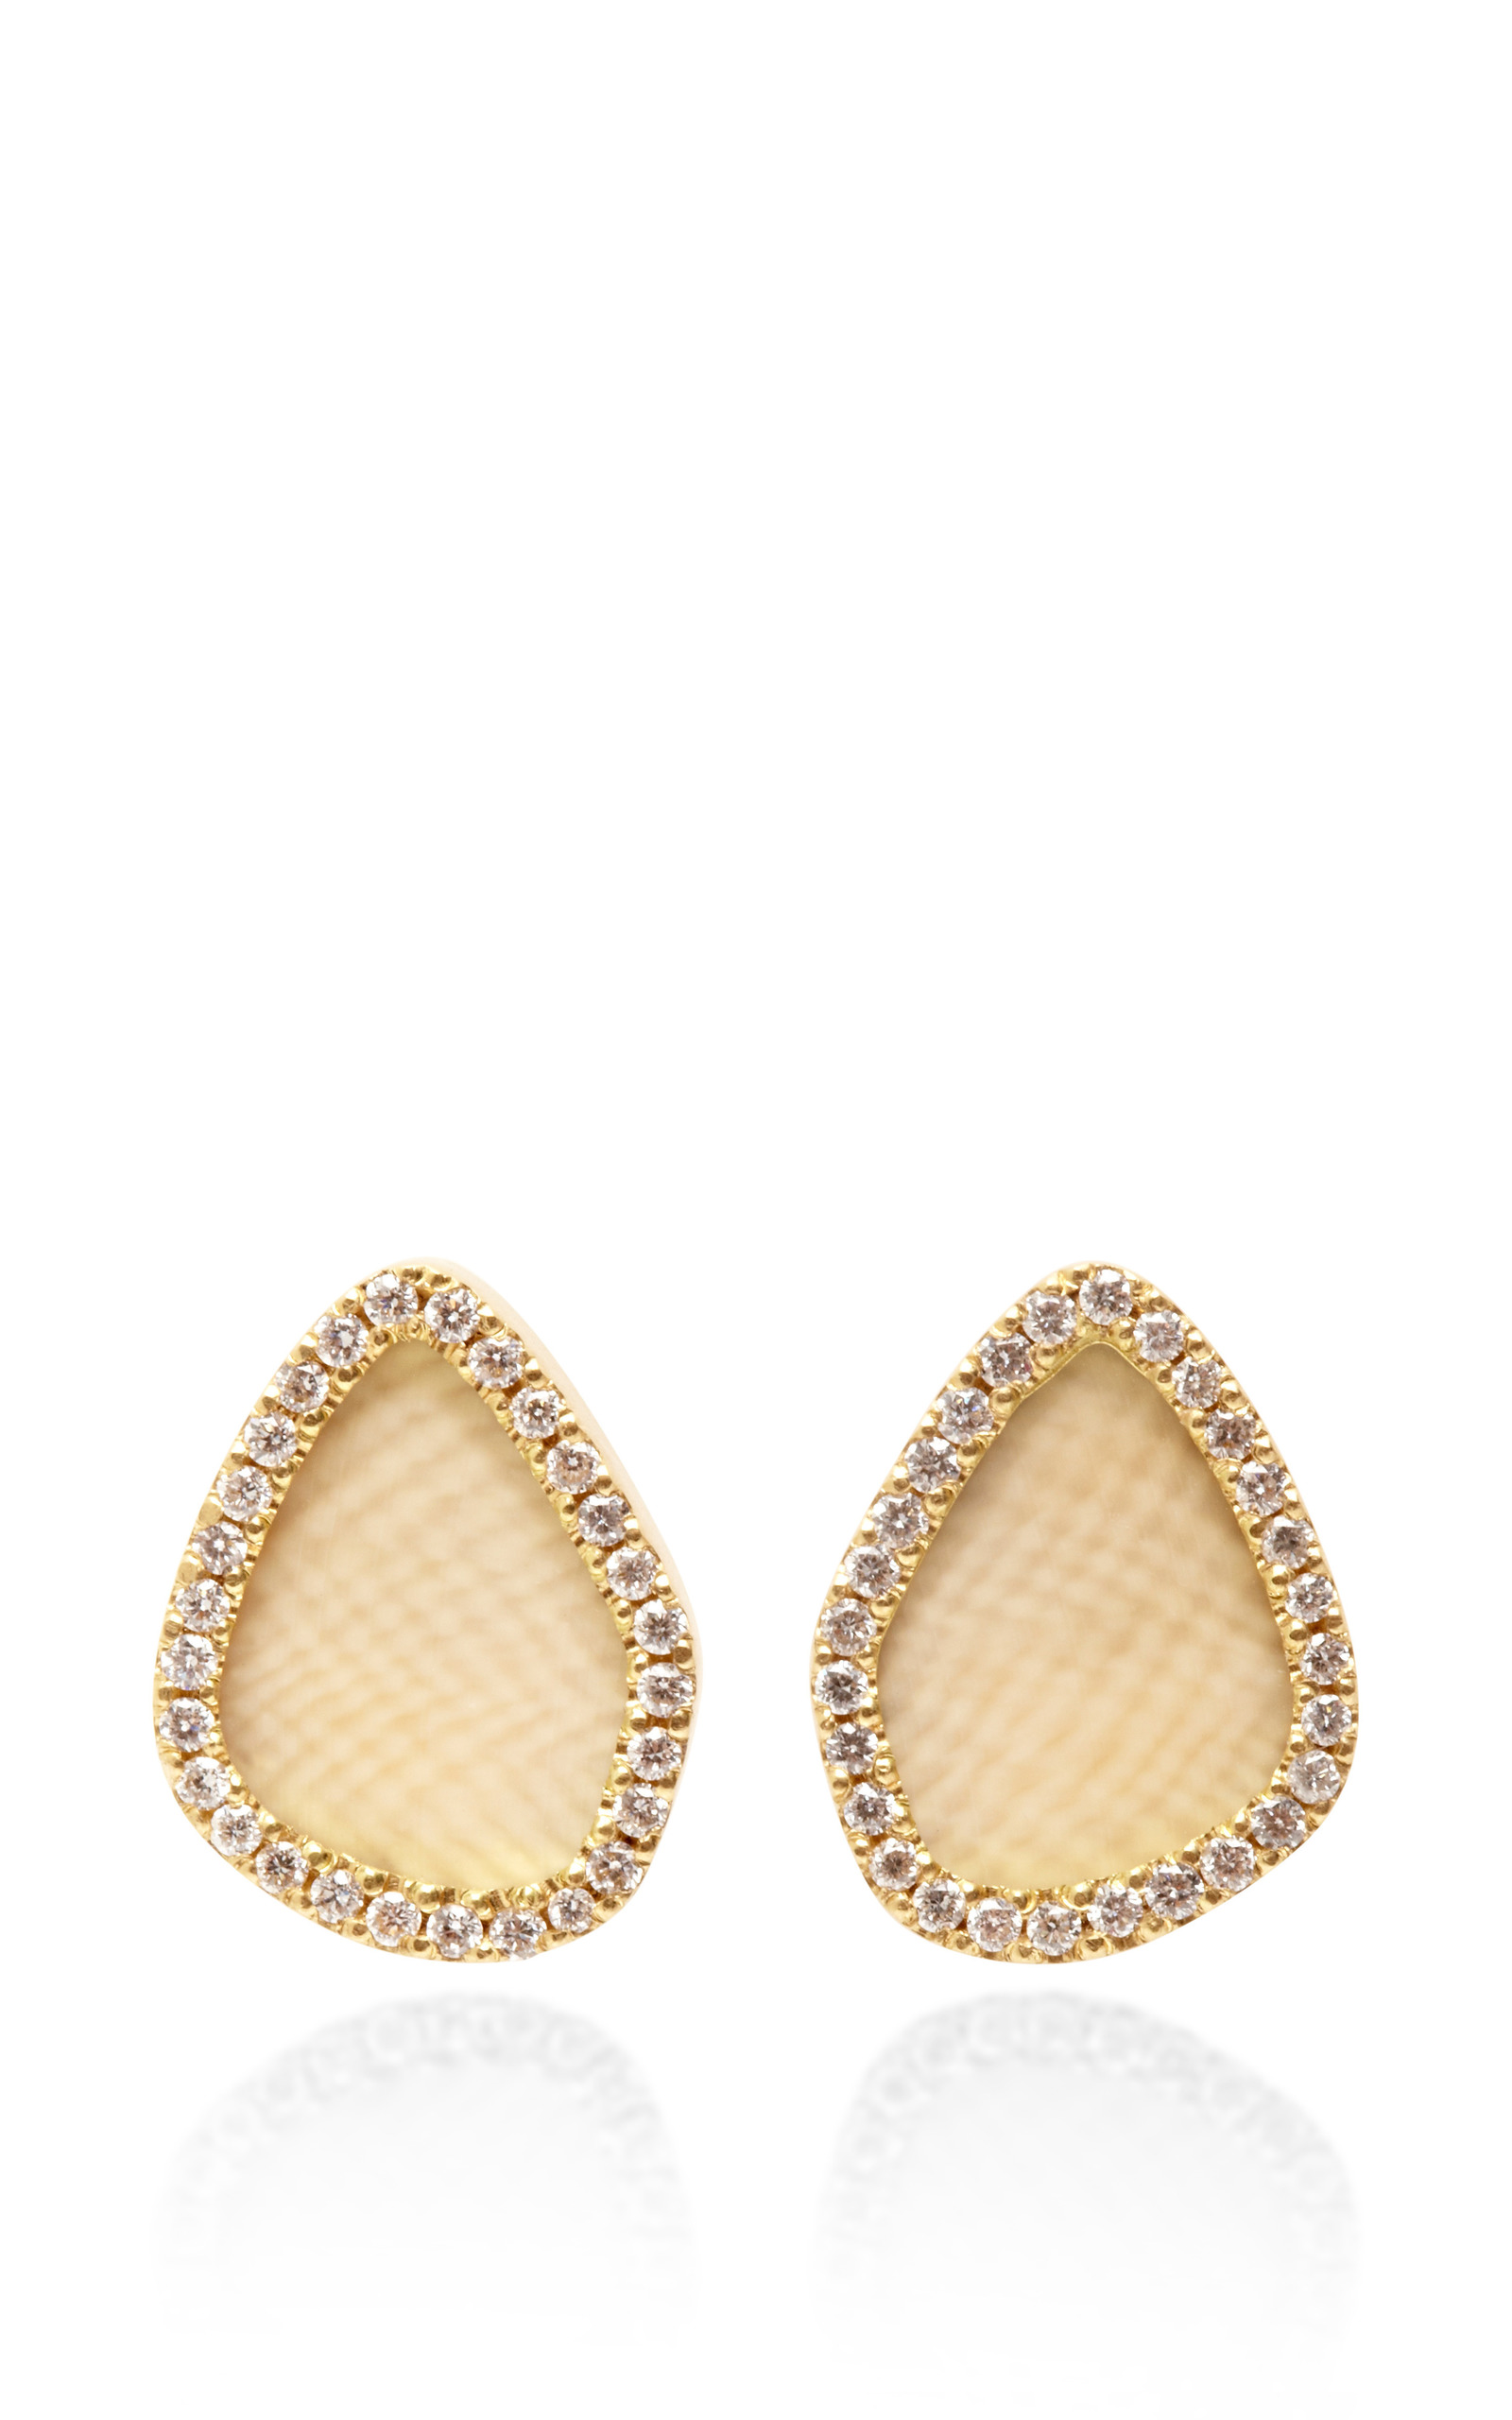 schwartz pave earrings son shop studs one stud atlantico diamond jewelry charles